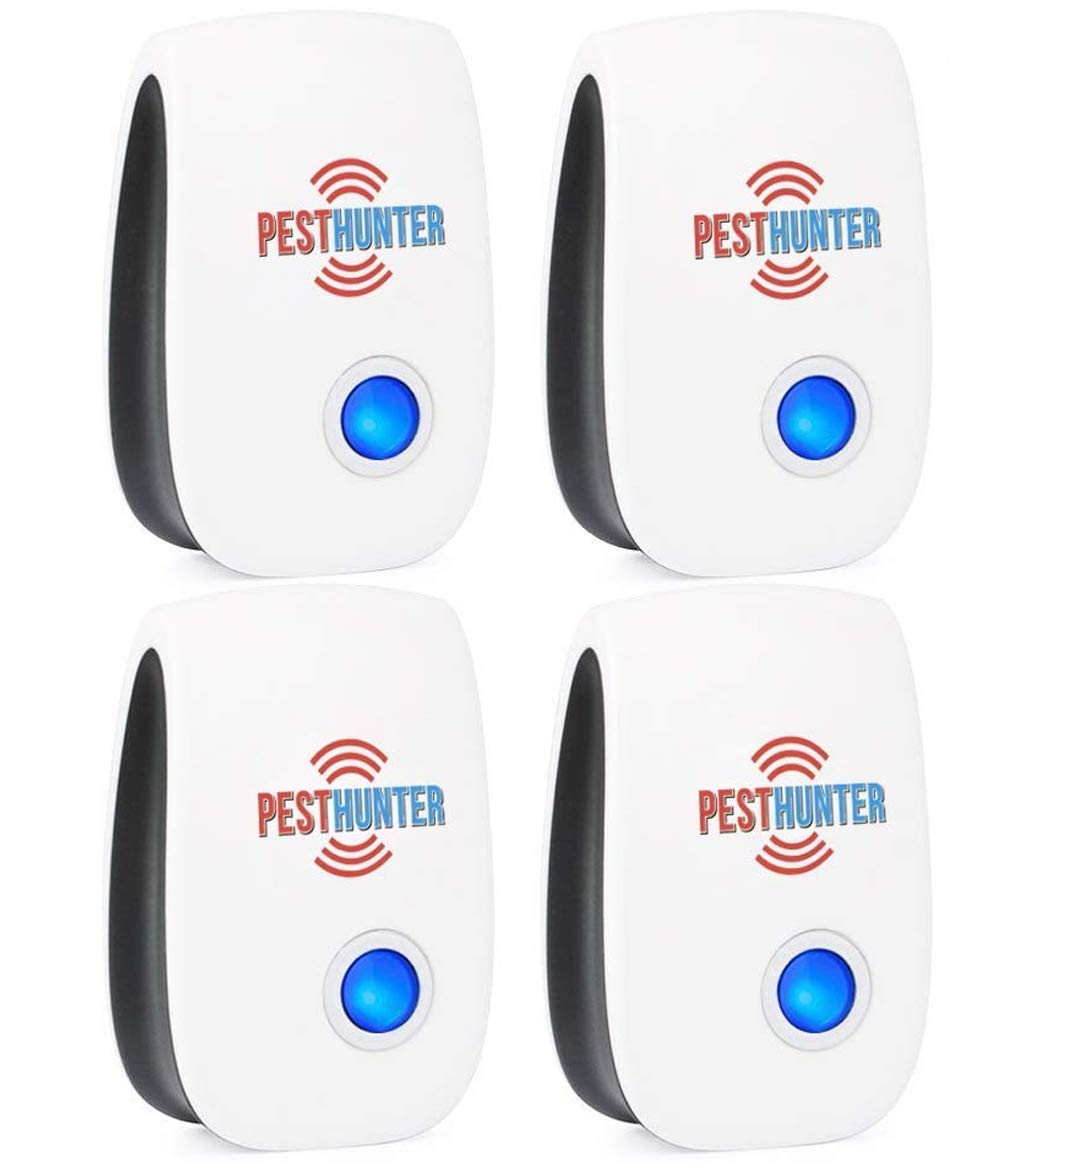 Ultrasonic Pest Repeller Plug In - 4 Eco Pack Repellent - Best Pest Defender Electronic Control - Indoor Rеpеllent Mouse Bed Bugs Mosquitoes Spiders Roaches Insect Ants Rats Cockroaches by PestHunter